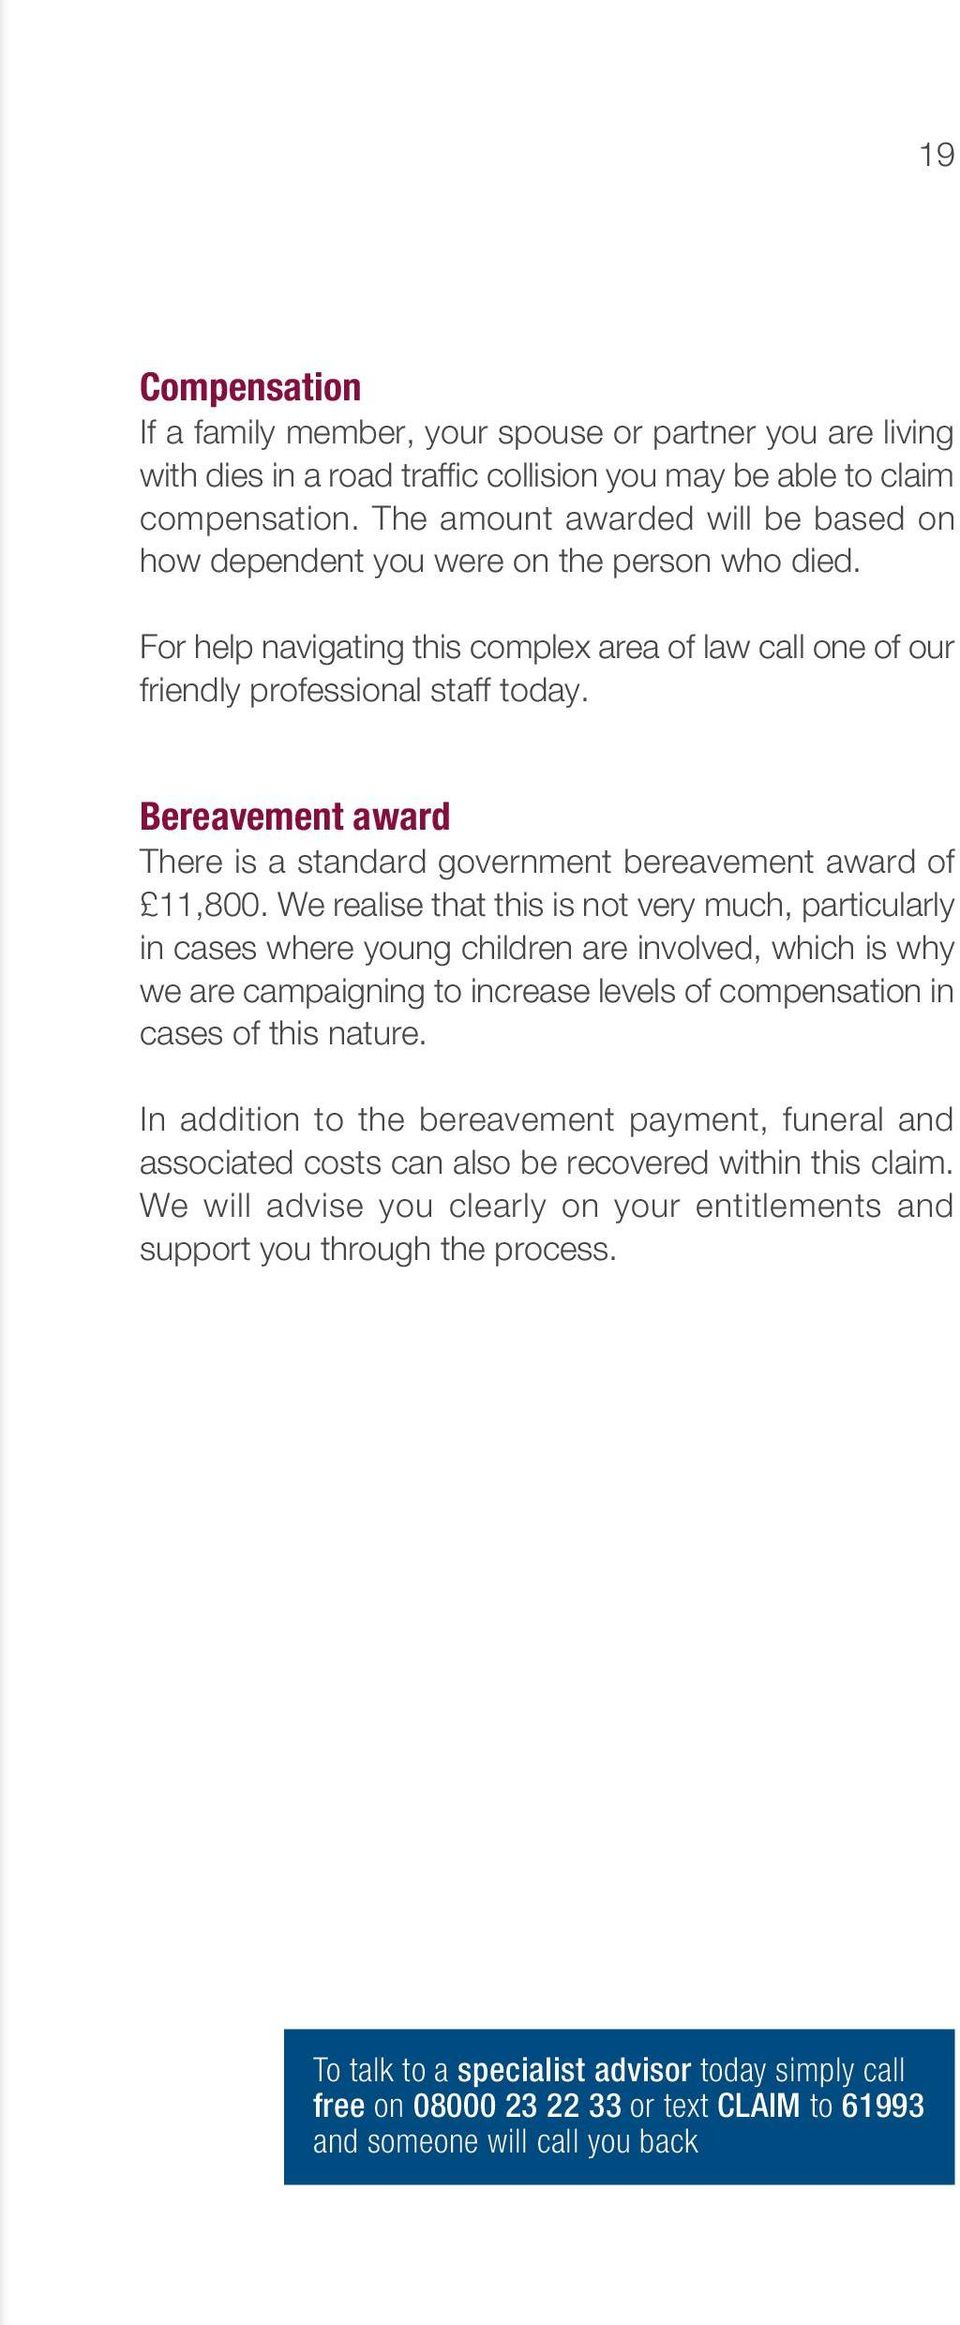 Bereavement award There is a standard government bereavement award of 11,800.